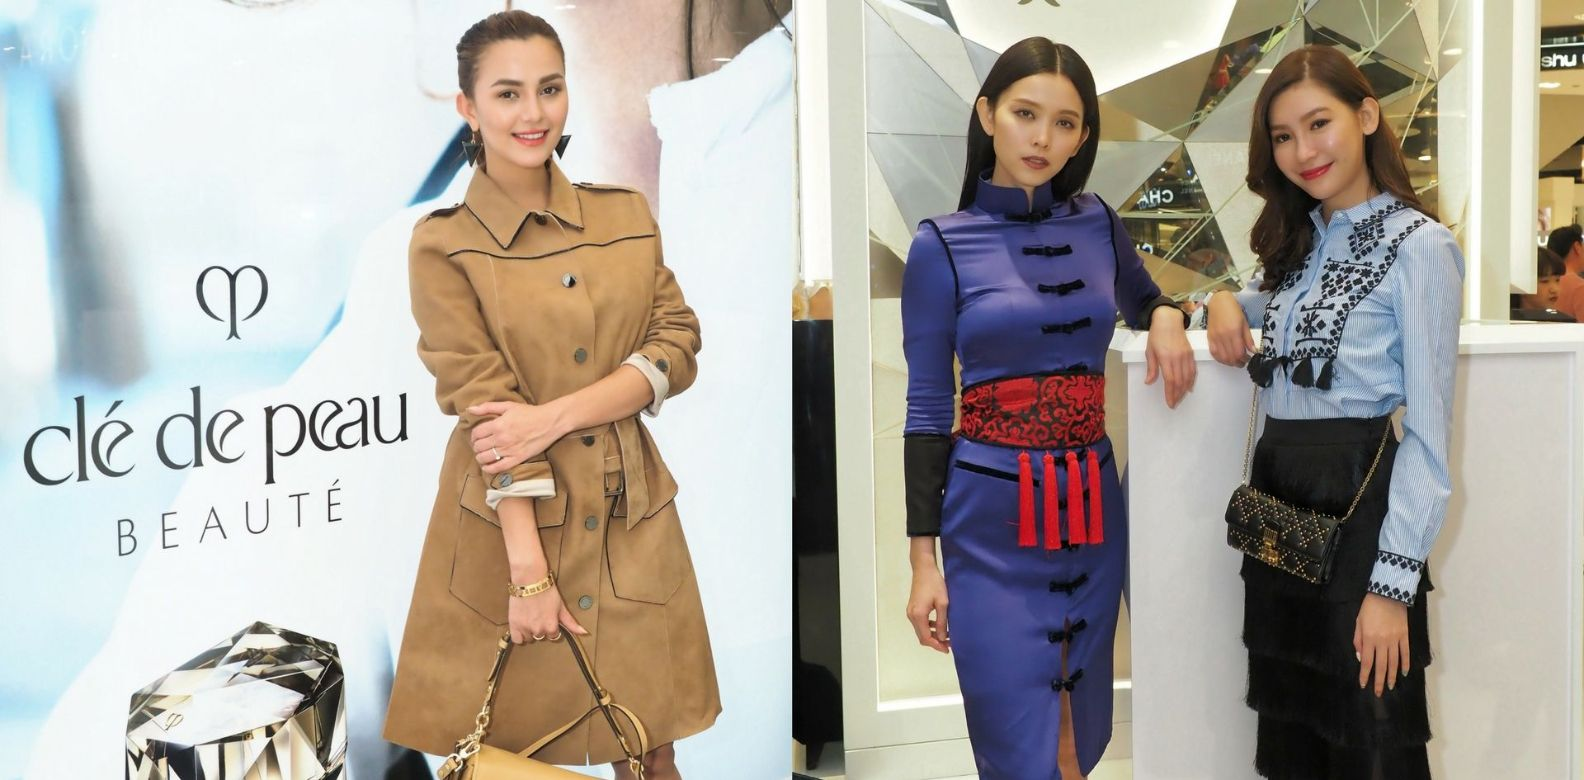 Guests like Juliana Evans, Natalia Ng and Anjoe Koh were in for an evening of laughter and beauty